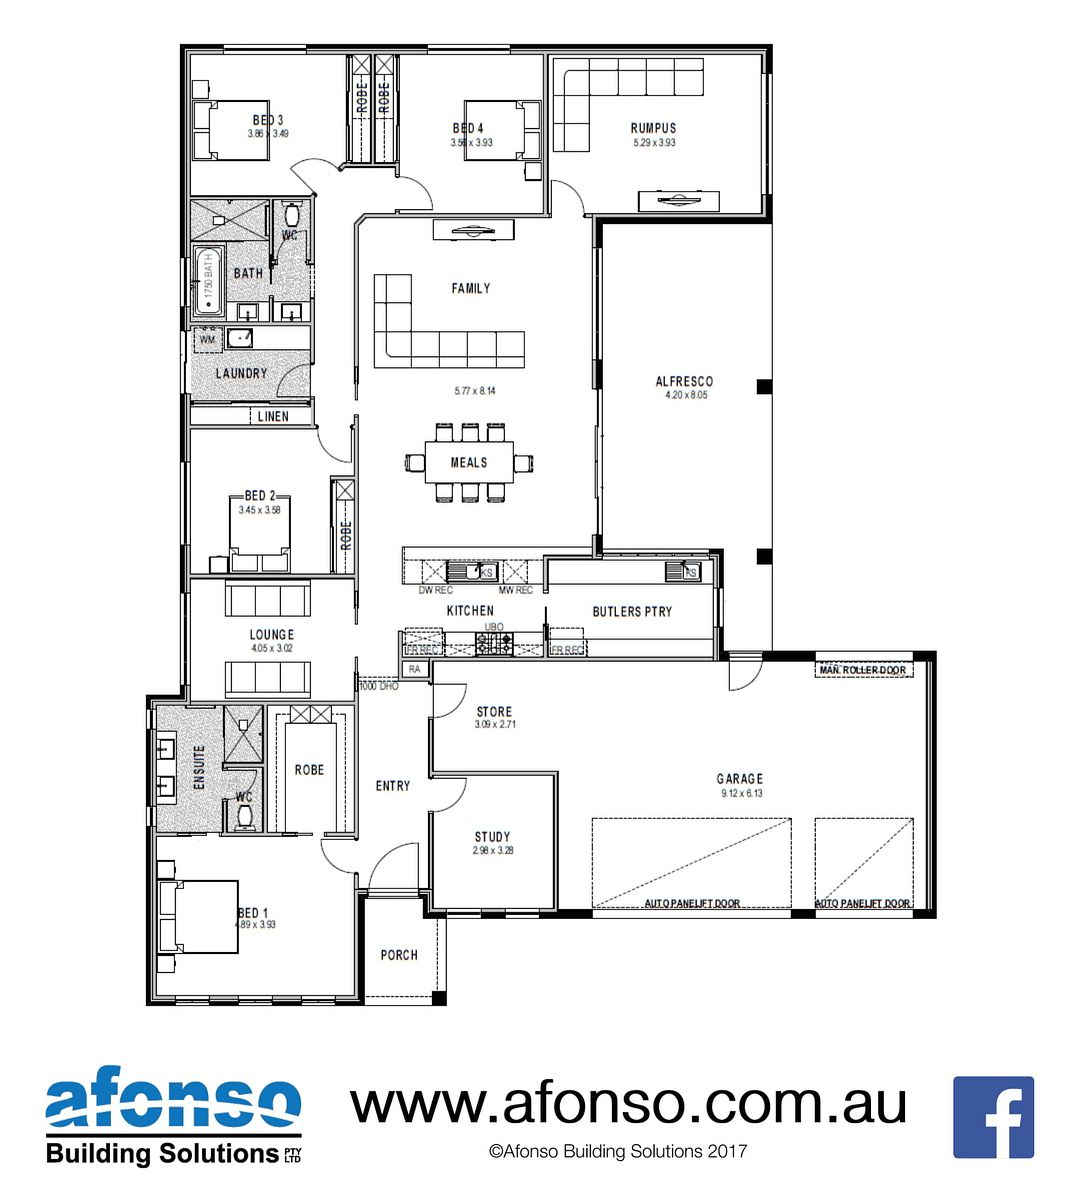 "AFONSO BUILDING SOLUTIONS on Instagram: ""FLOORPLAN FRIDAY ..."